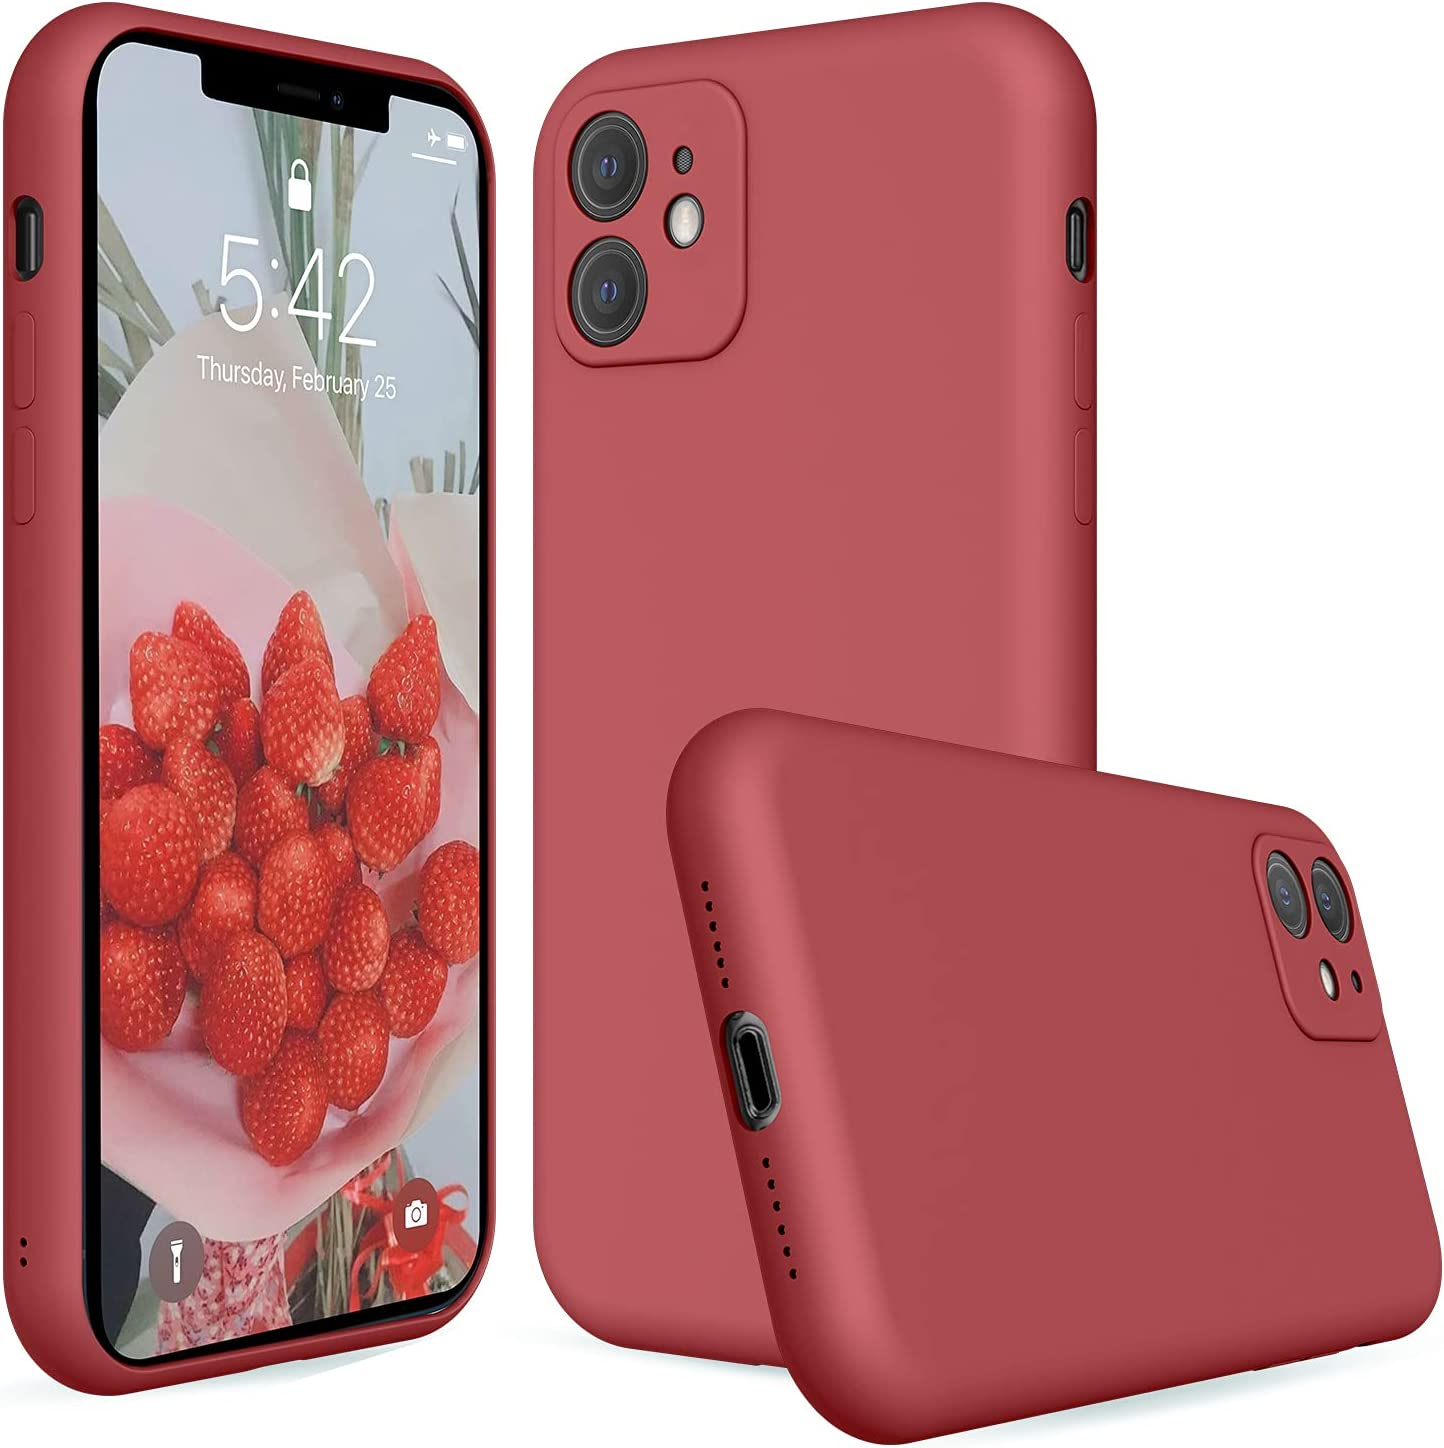 iPhone 11 Silicone Case Camellia,Liquid Silicone Case Compatible with iPhone 11,Protective Cover Case for iPhone 11 Camellia 6.1 Inch